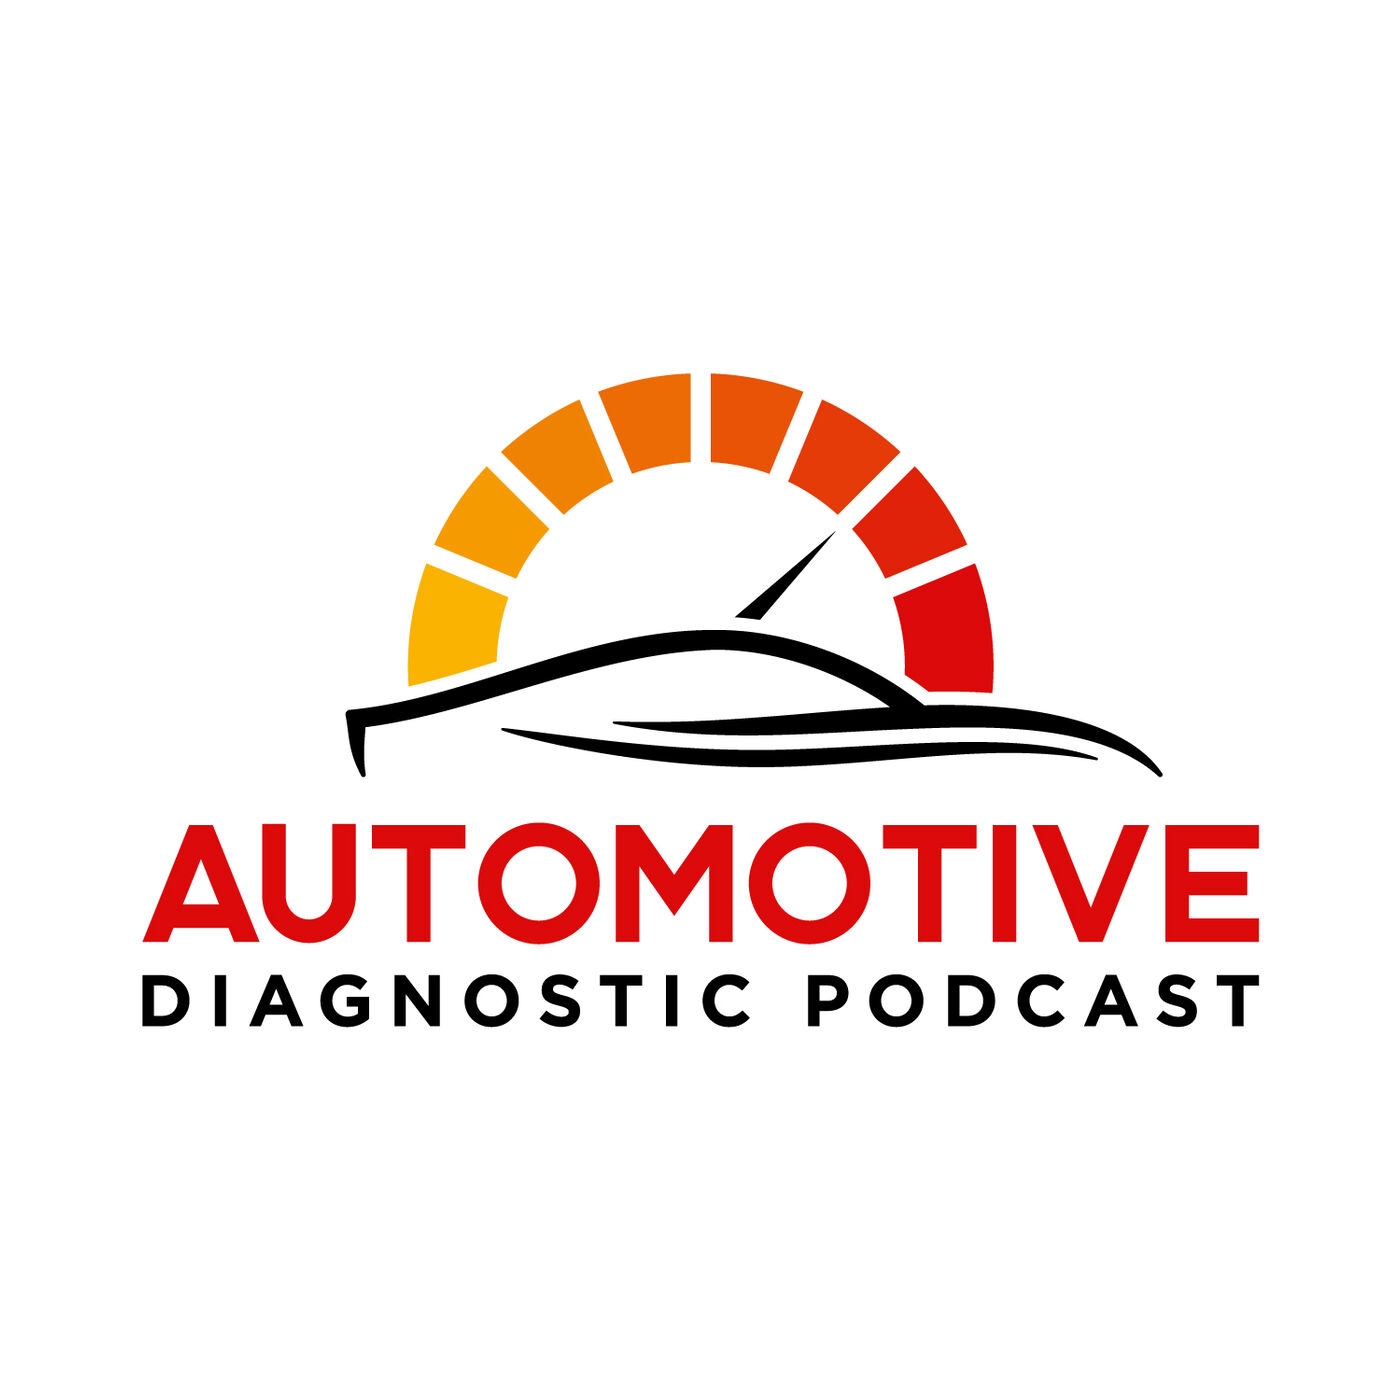 Automotive Diagnostic Podcast Logo